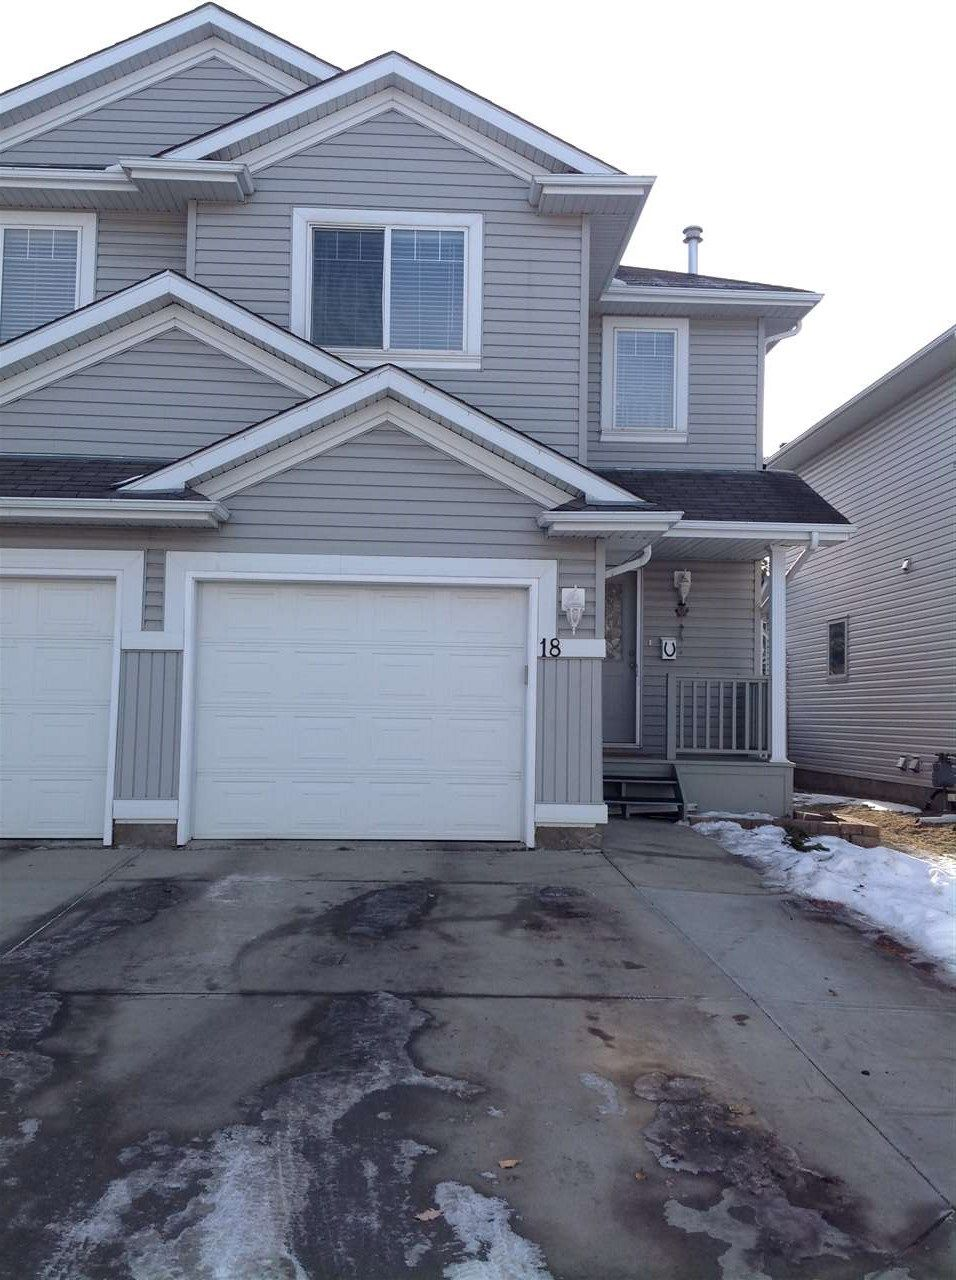 Main Photo: 18, 13403 CUMBERLAND Road in Edmonton: Zone 27 House Half Duplex for sale : MLS®# E4235361